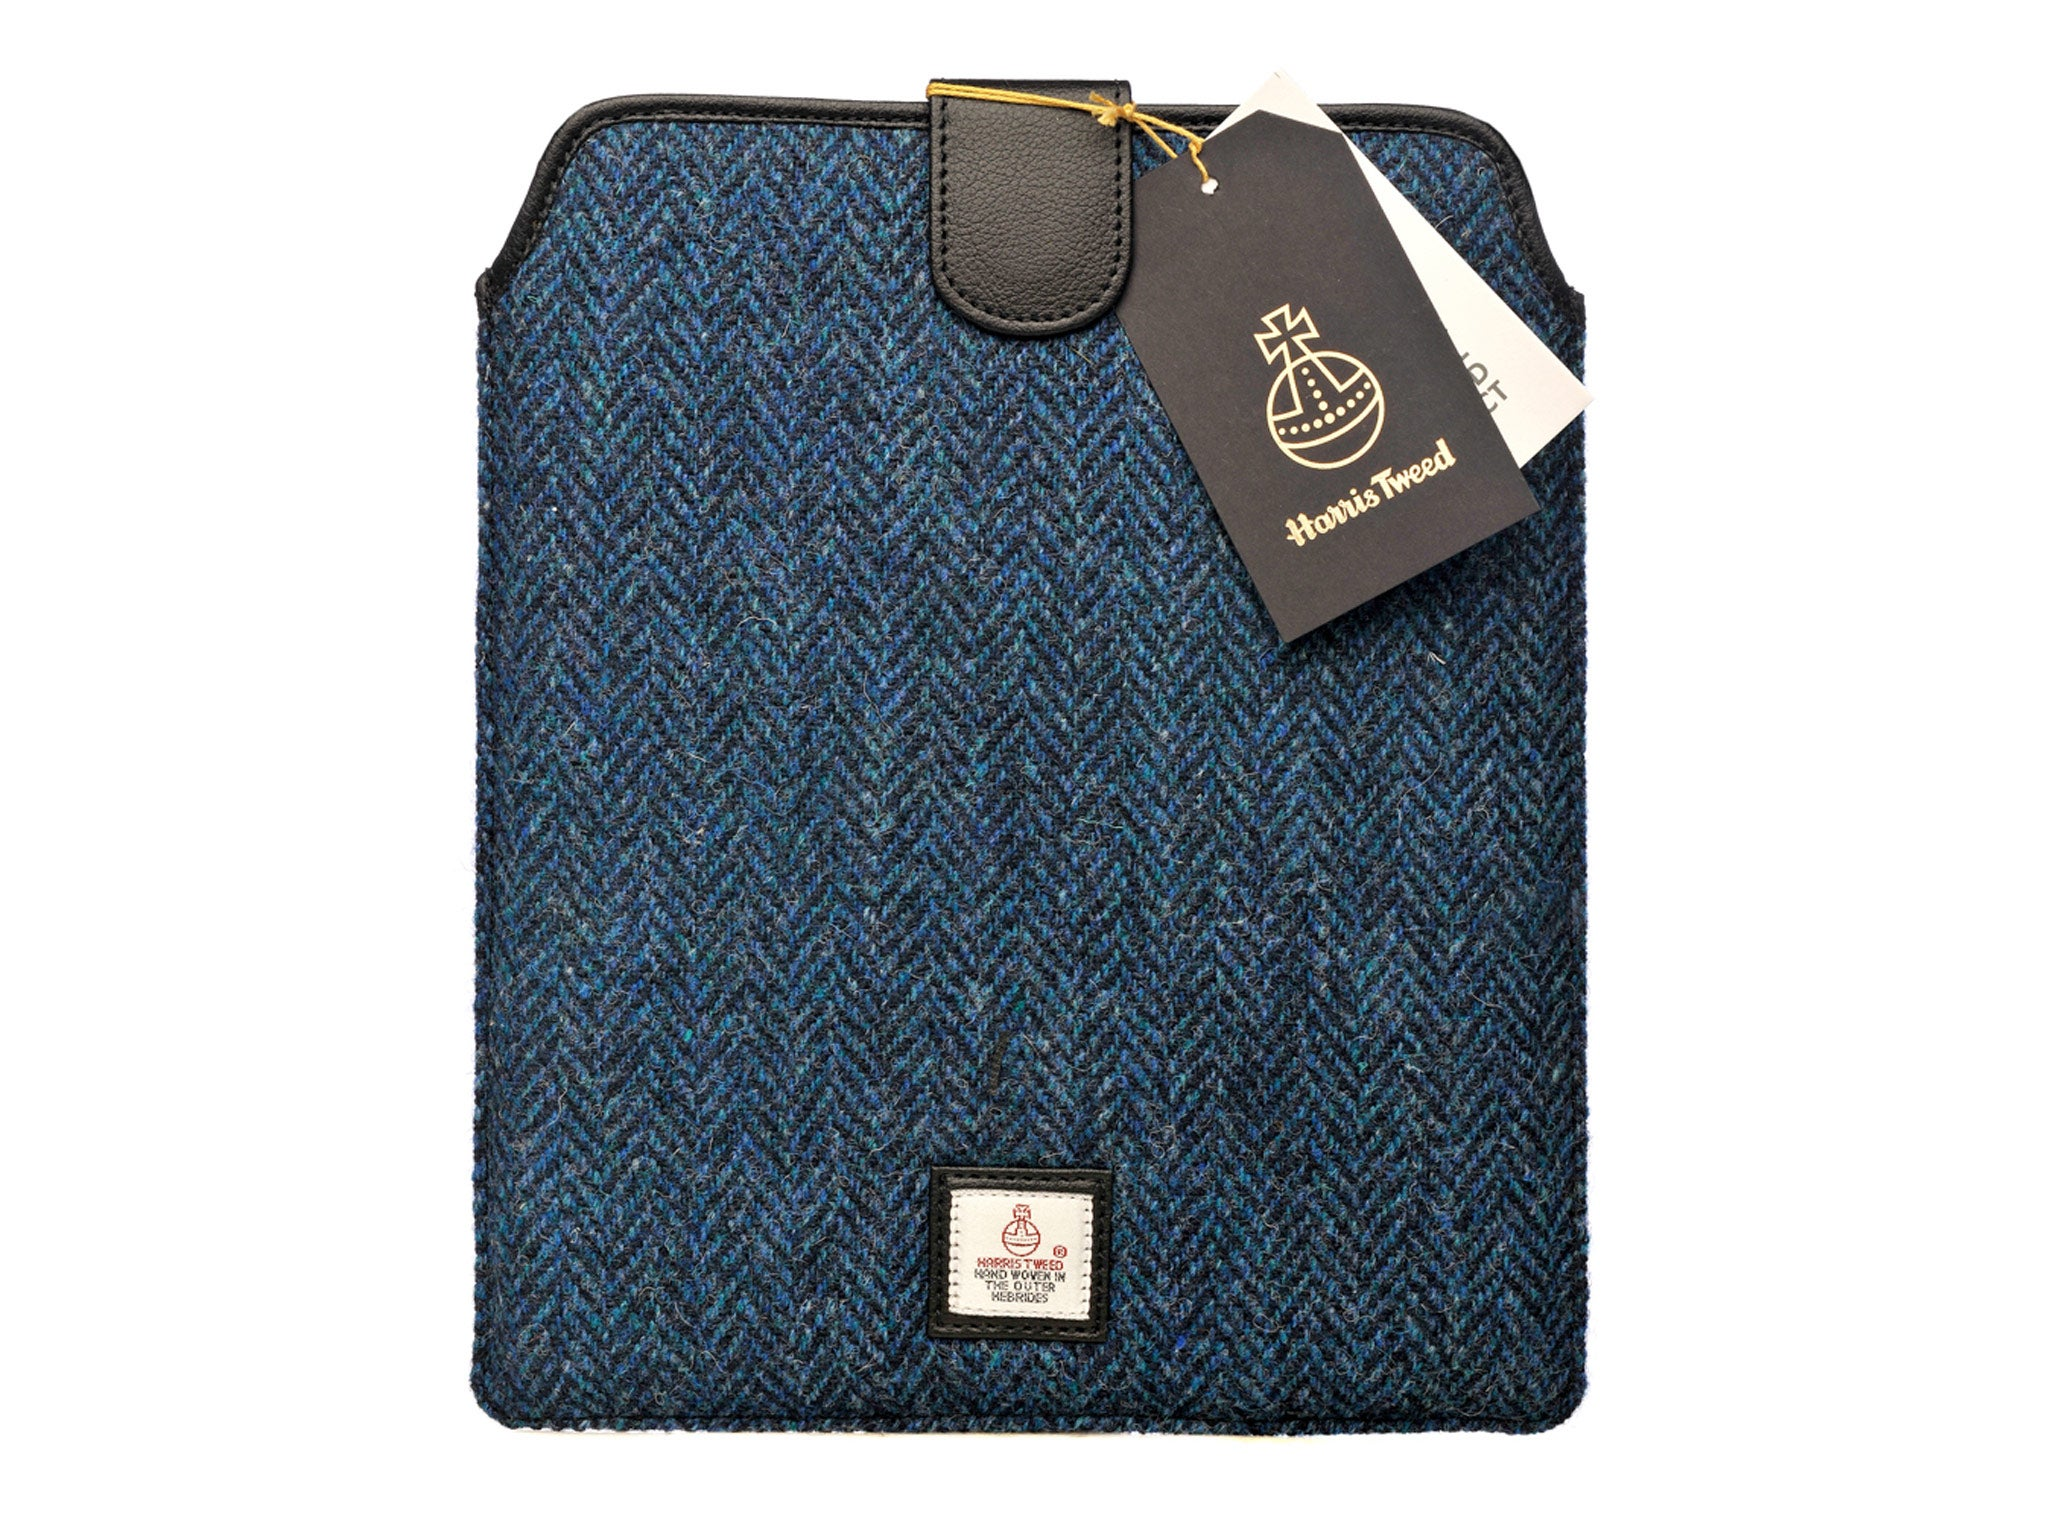 10 Best Tablet Cases The Independent Woolen Felt Laptop Softcase Sleeve Macbook Air Pro Retina Ipad Mini Up To 13 Inch Using Tweed Produced In Outer Hebrides Of Scotland This Case Will Snugly House Your Soft Inner Lining Helps Screen Remain Scratch Free